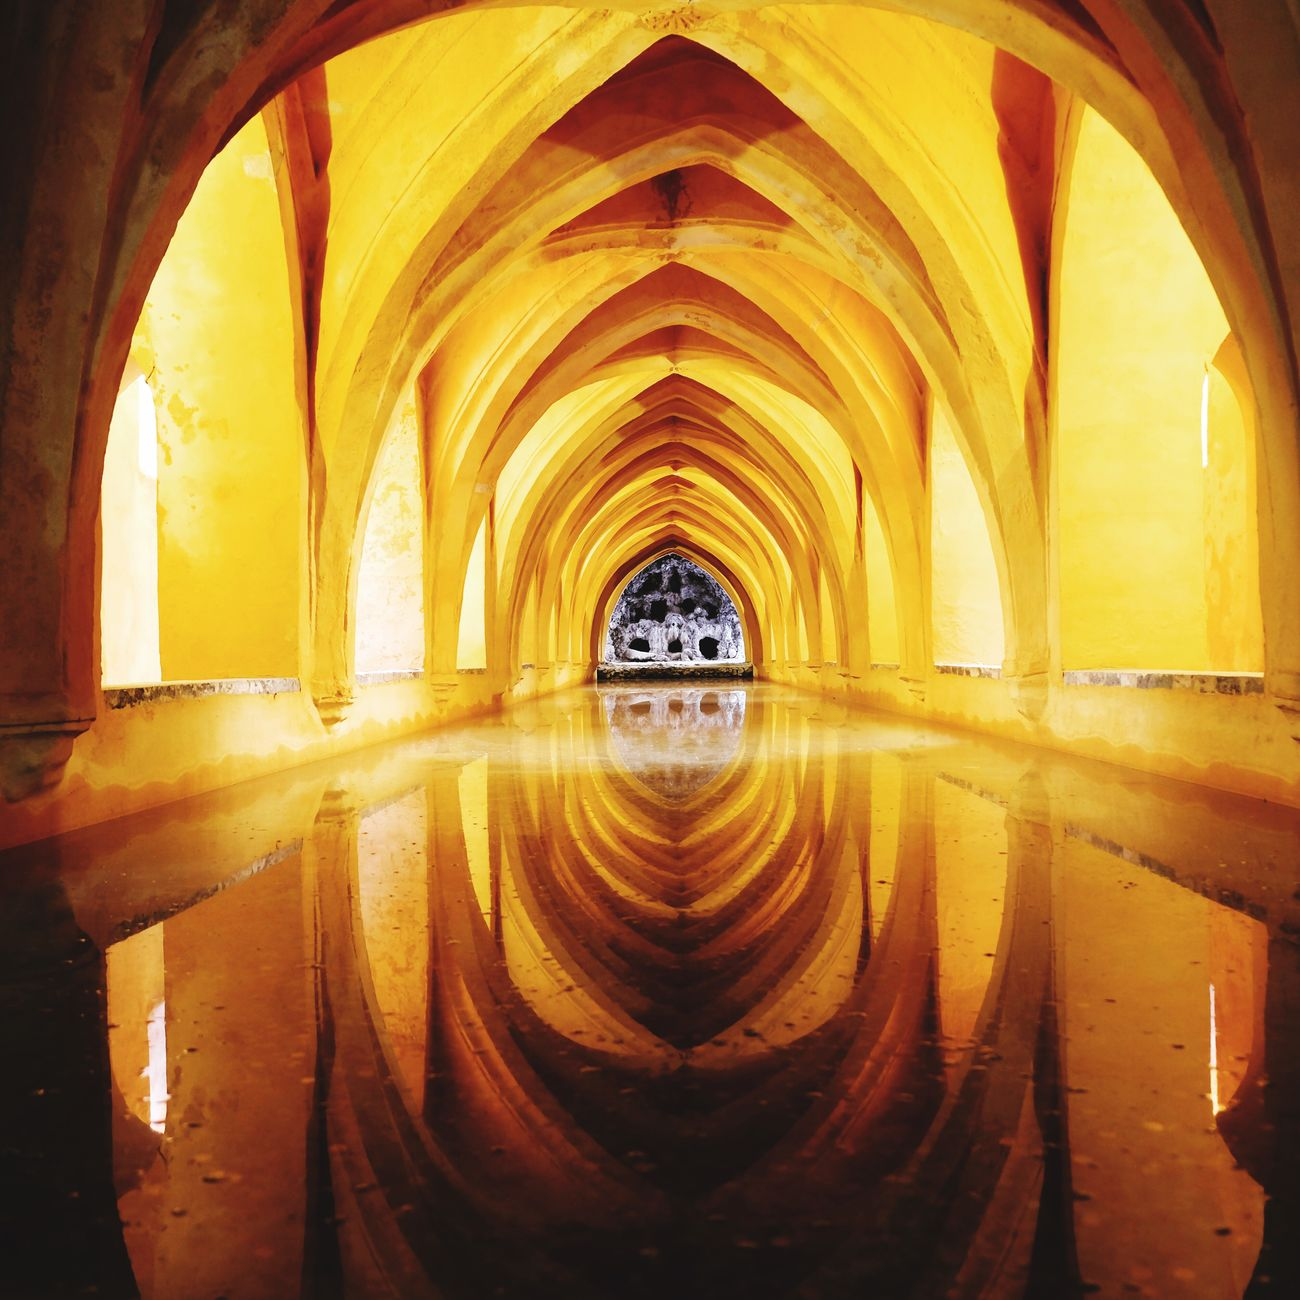 Baths in Alcazar Seville Spain Reflection SPAIN Spain, Andalucia, Malaga Travel Destinations Travel Travelphotography Alcazar The Real Alcazar Photography Photooftheday Photograph Photo Light And Shadow Beautifuldestinations Wonderfulplaces Indoors  Architecture Arch No People Built Structure Day First Eyeem Photo EyeEmNewHere